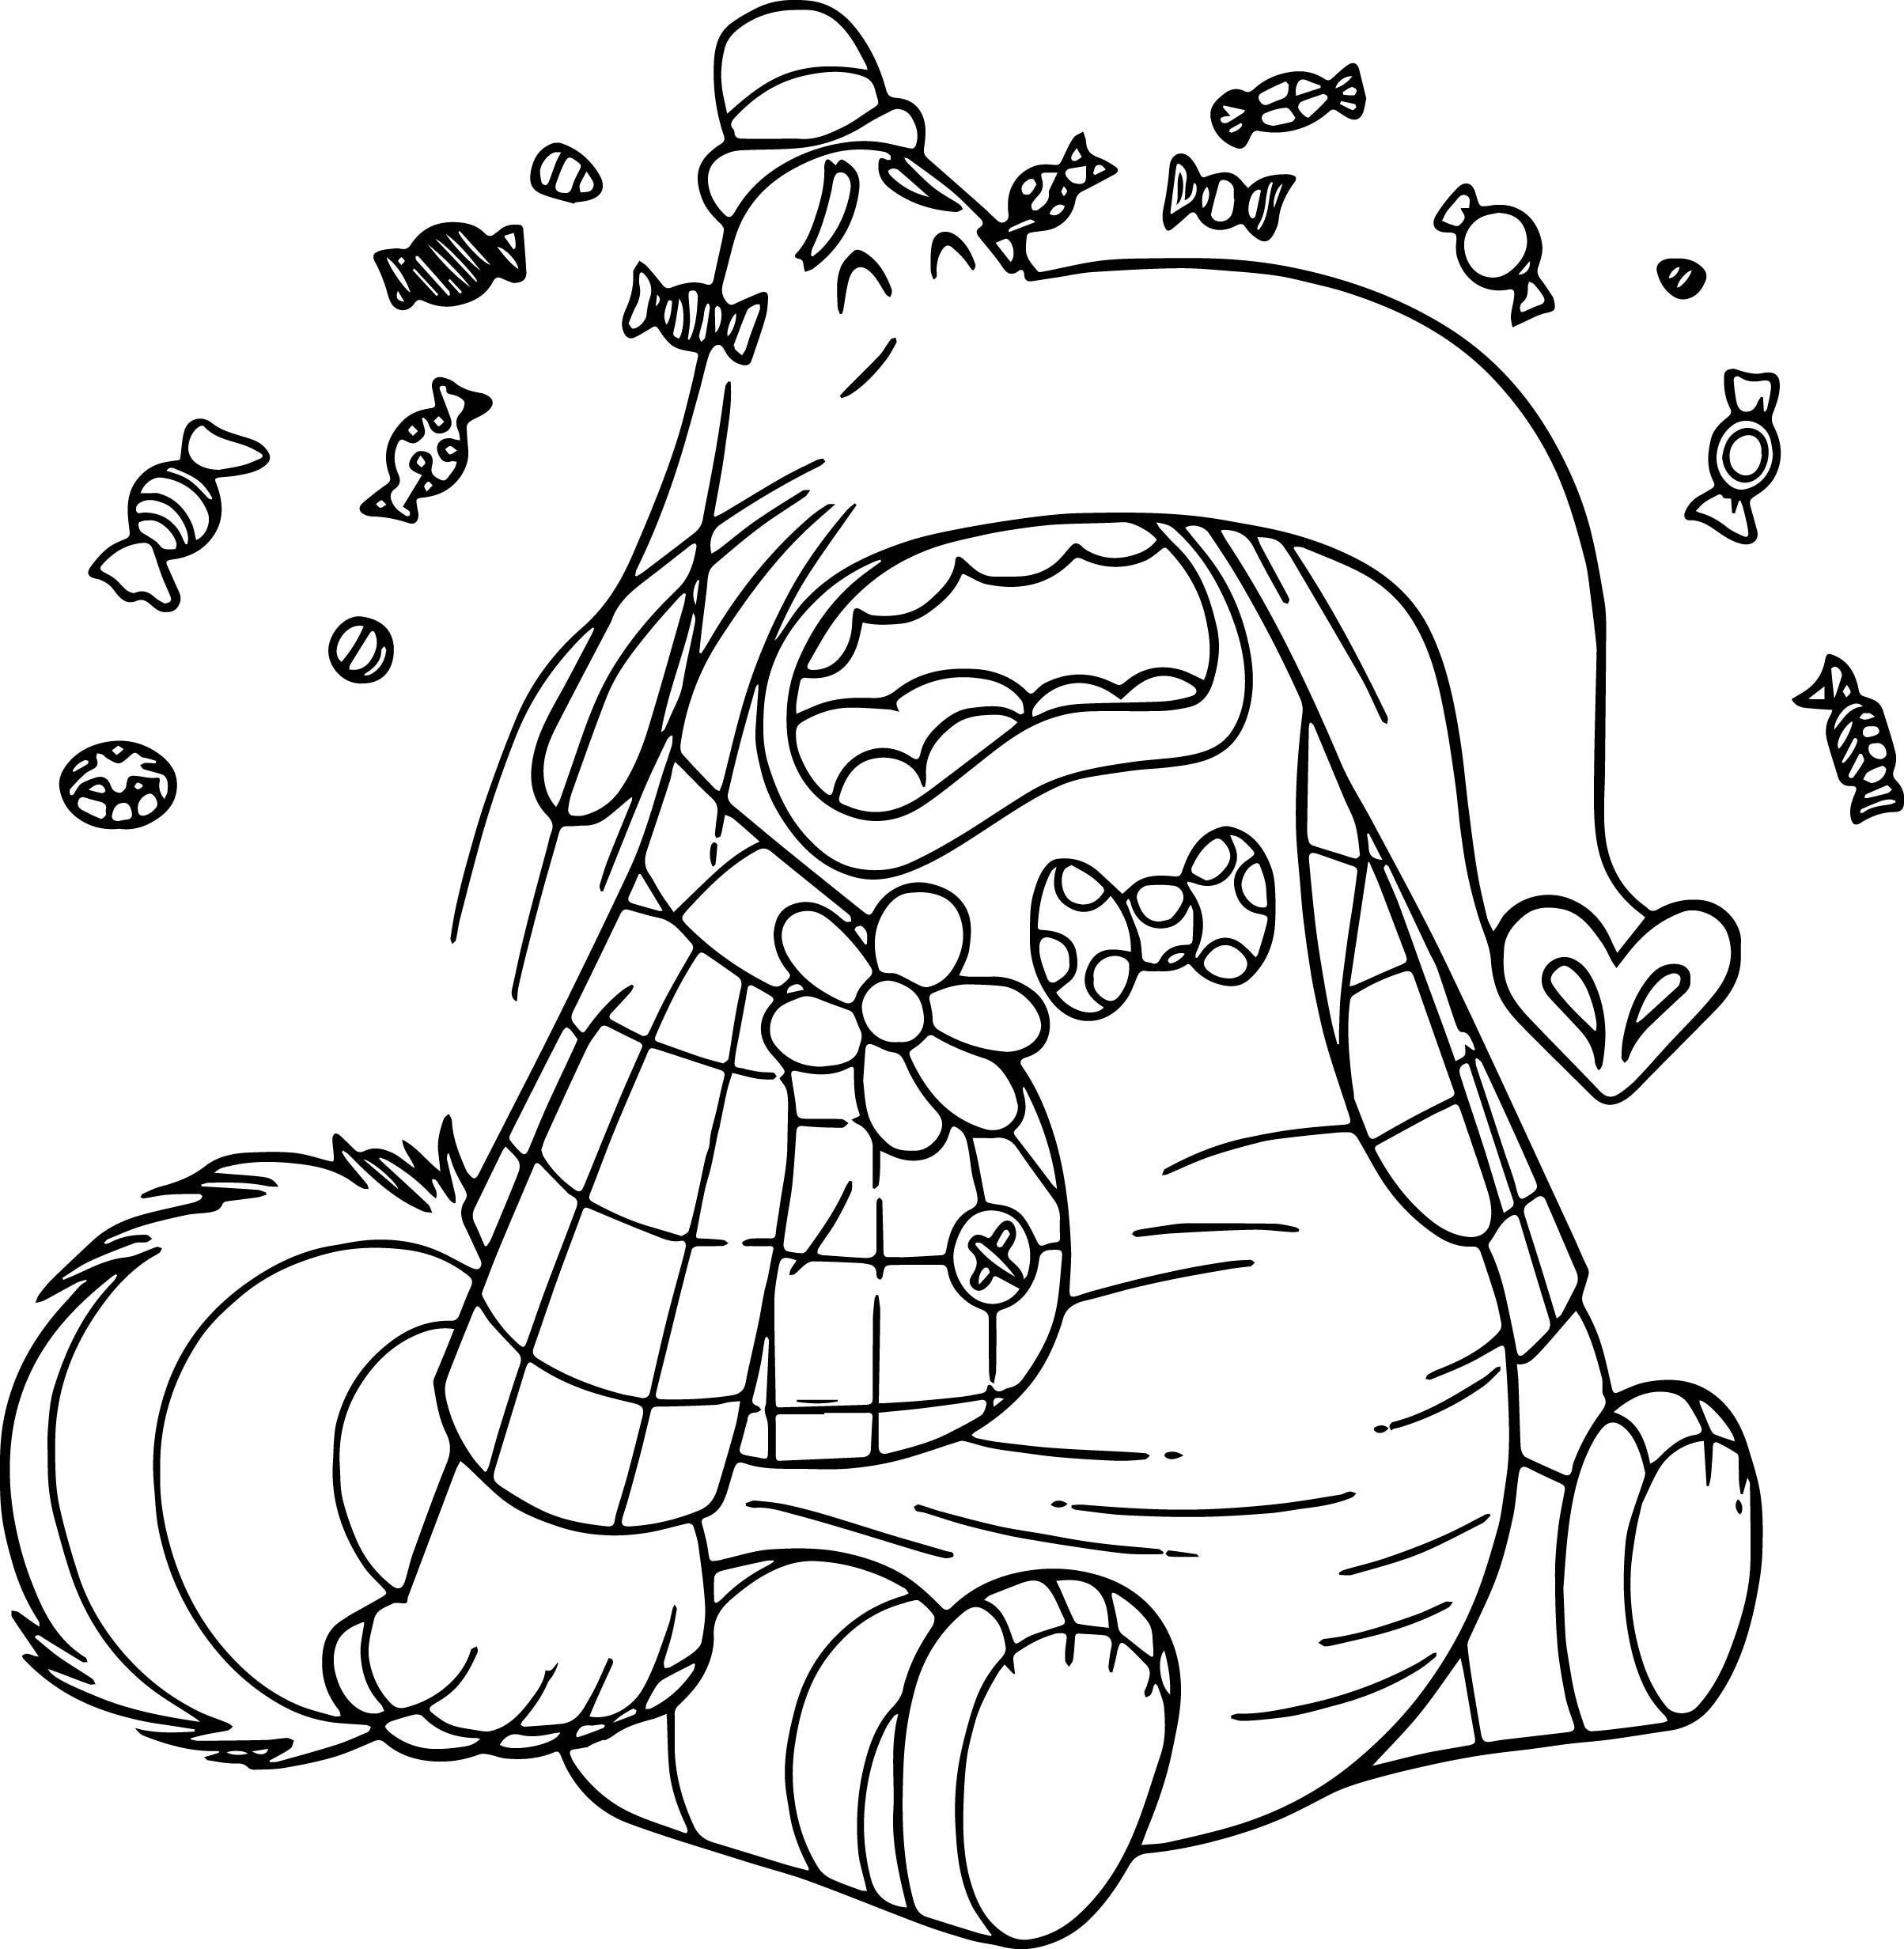 Inside Out Movie Coloring Pages at GetColorings.com   Free ...